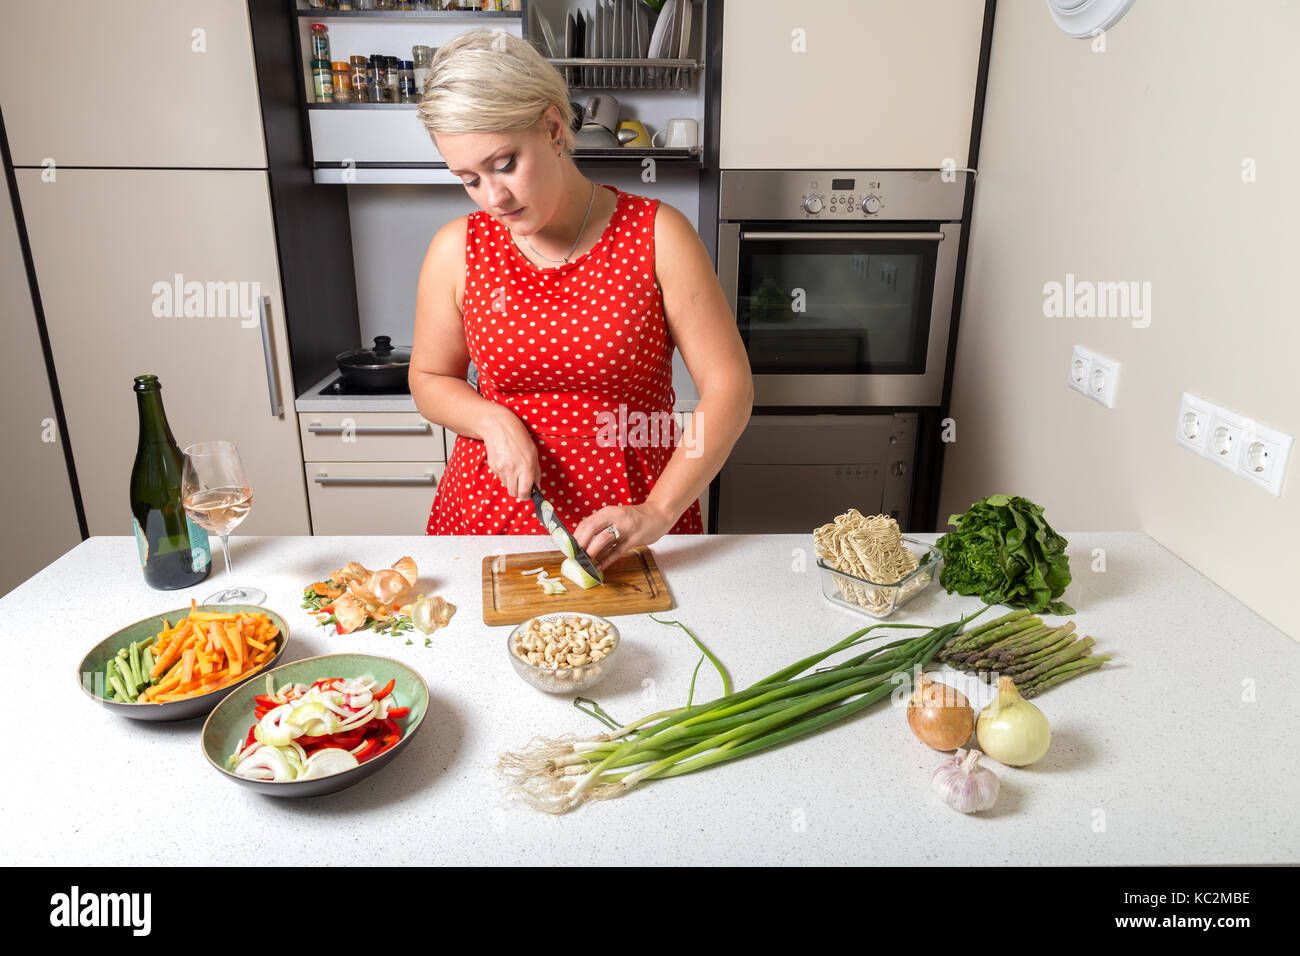 Girl cutting onions in red dotted dress Stock Photo